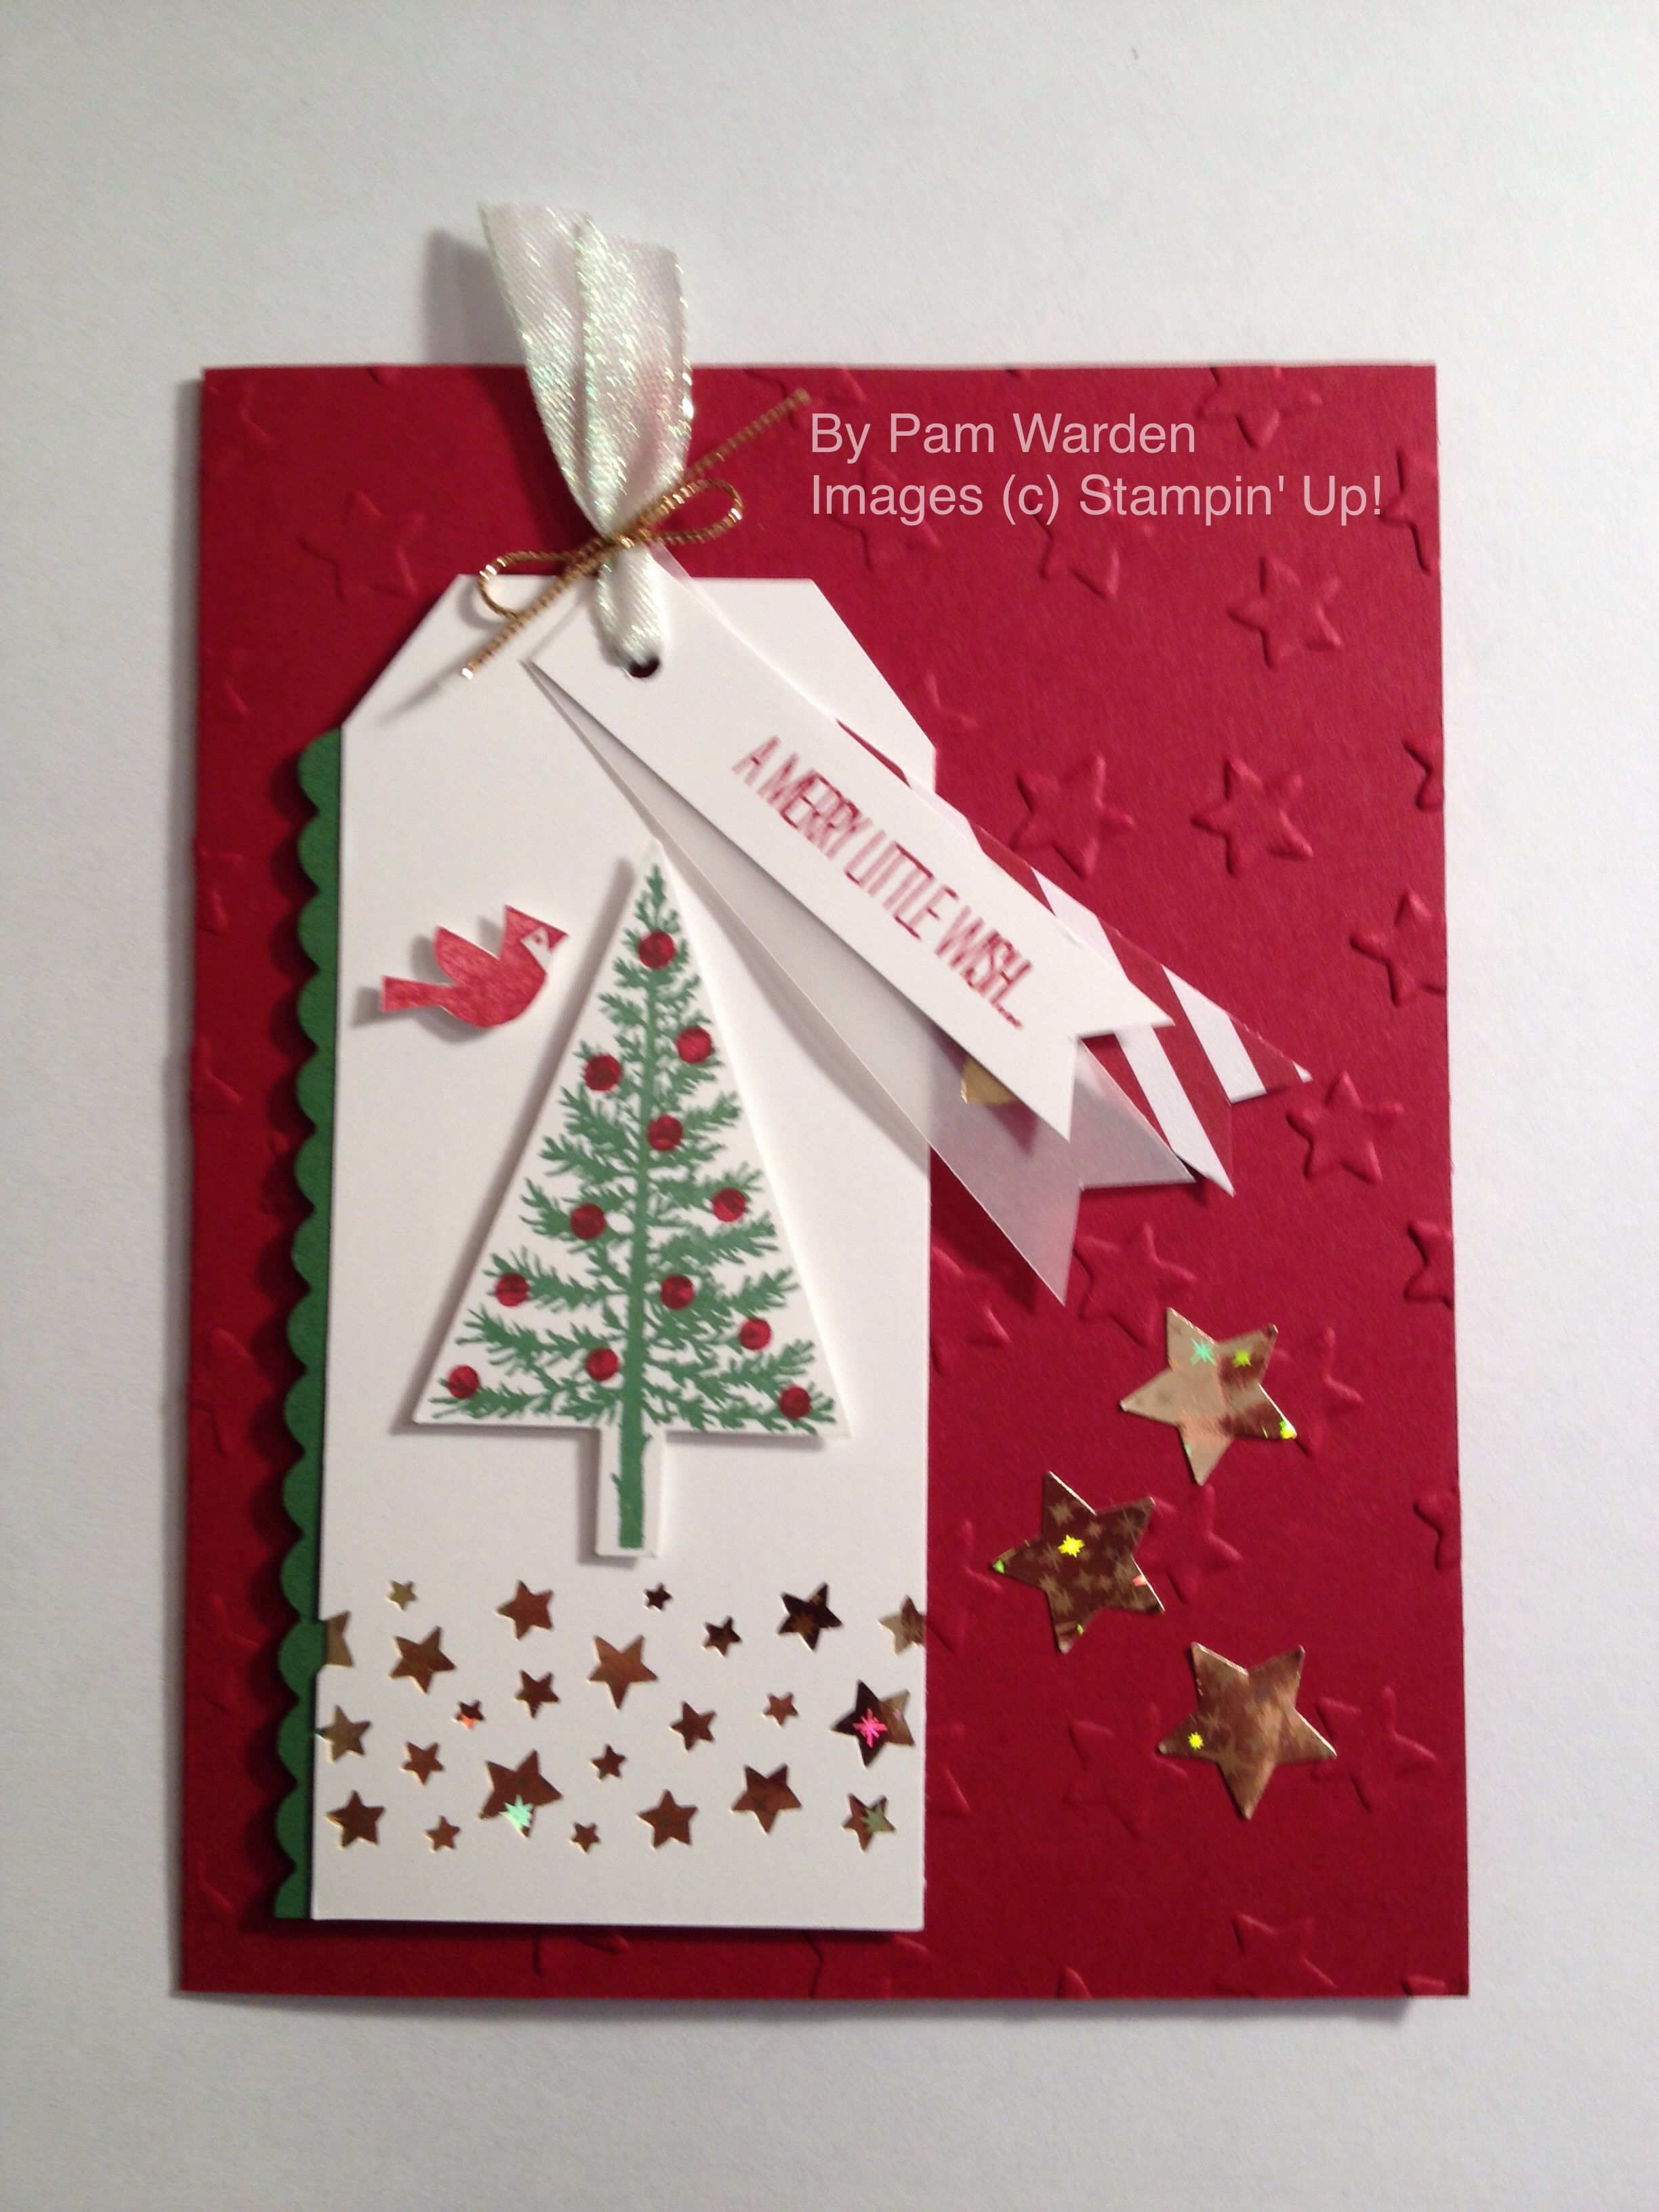 Pin by Pam Warden on Christmas | Pinterest | Cards, Xmas cards and ...